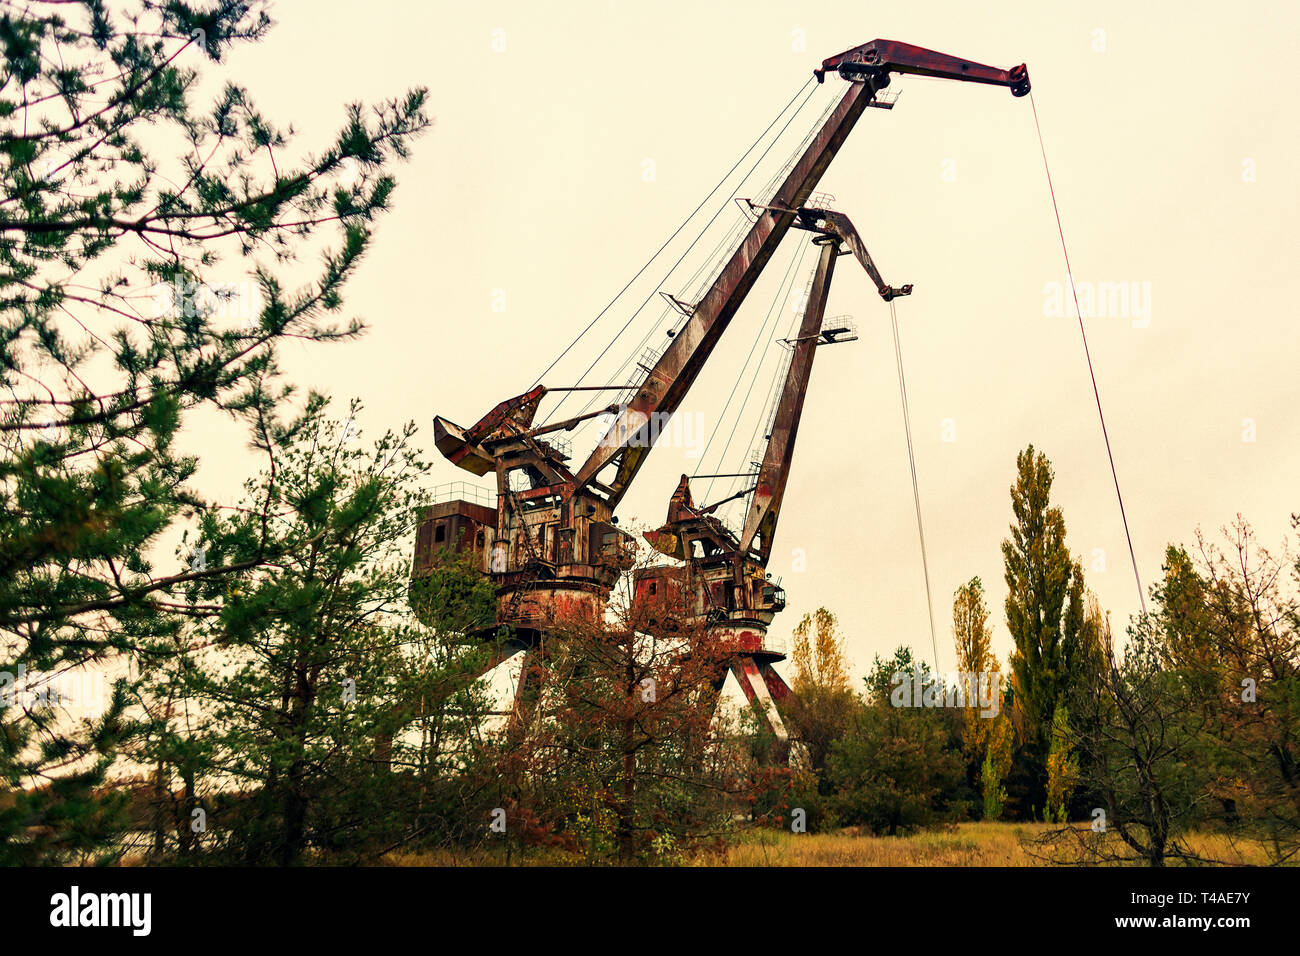 Abandoned cranes in harbour of Chernobyl in Ukraine nearby Chernobyl Nuclear Power Plant.  It was evacuated on the 27th of April 1986, day after the m - Stock Image